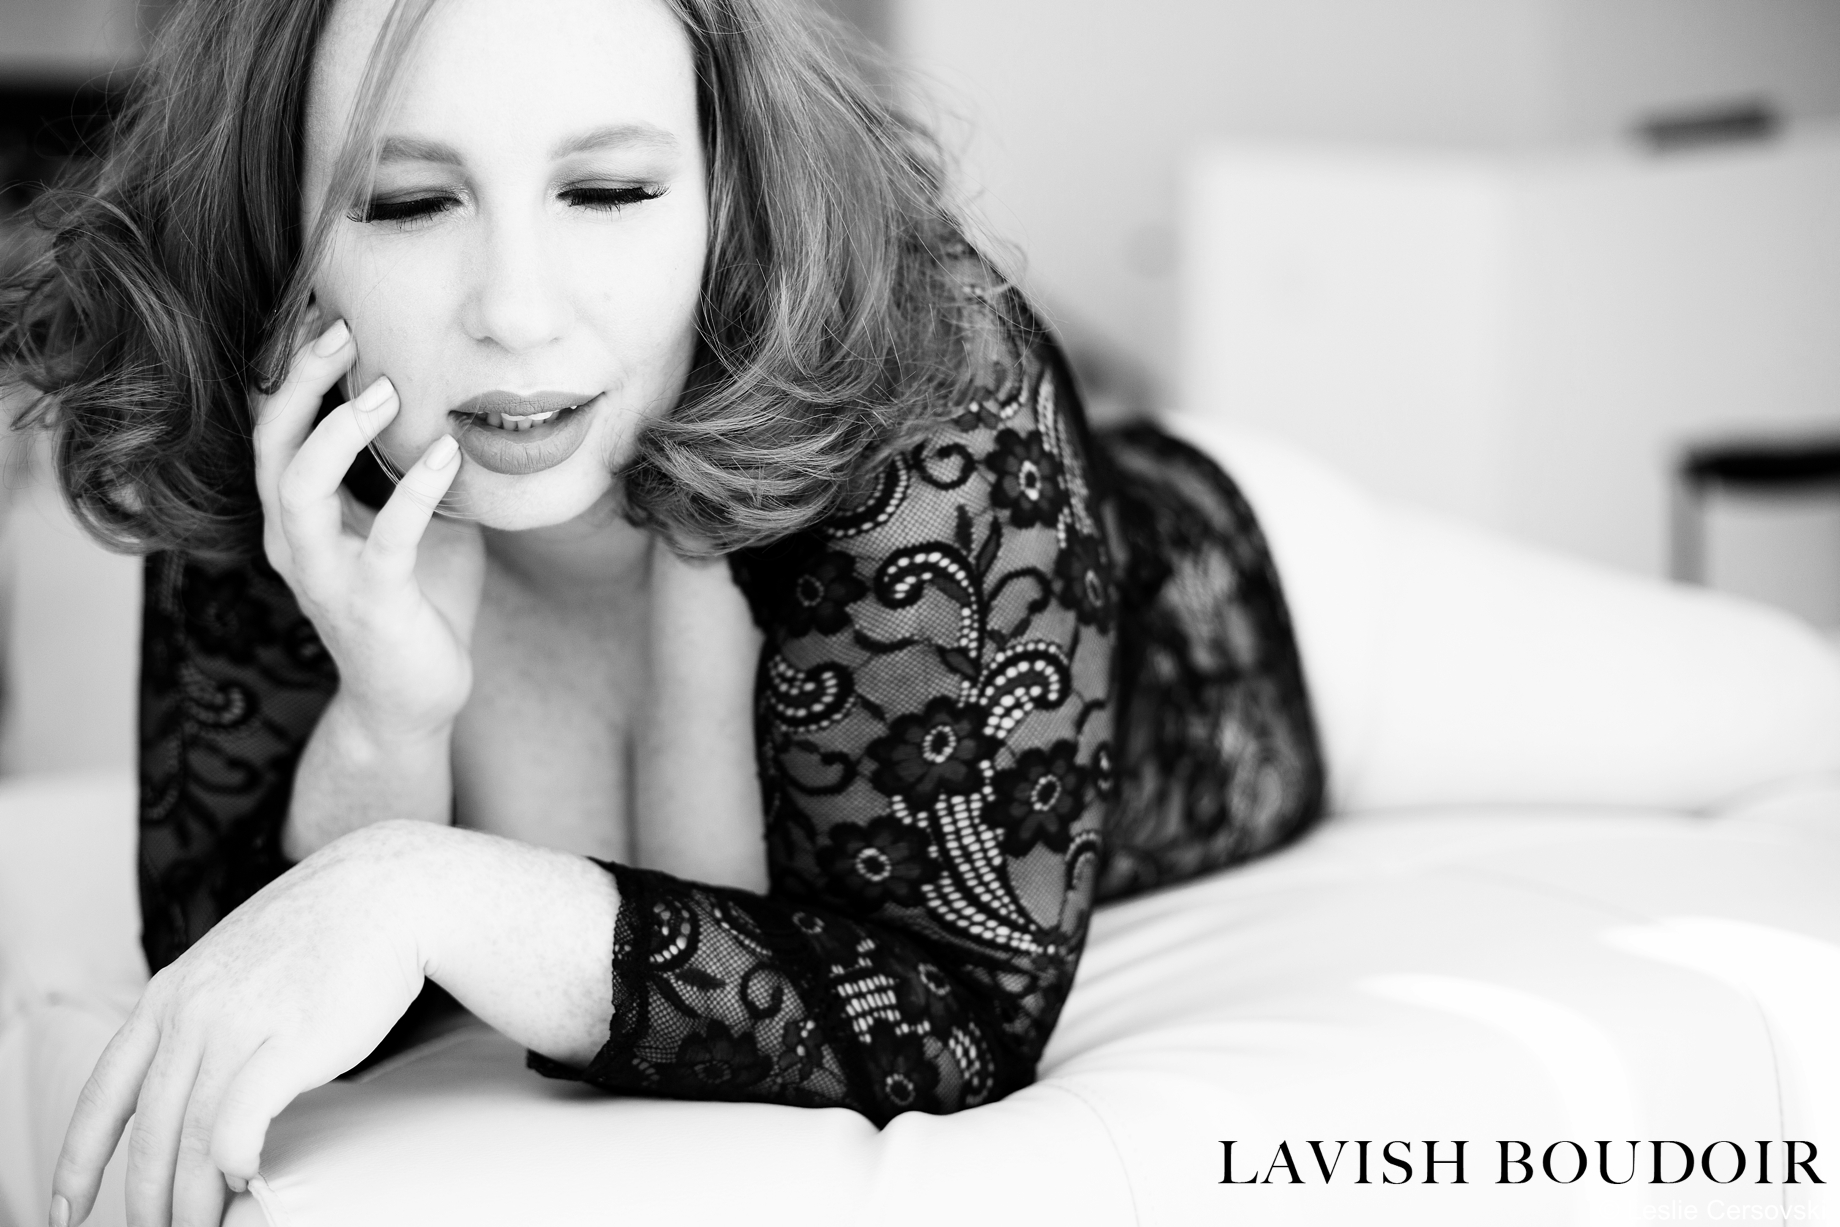 Photo by Leslie Cersovski at Lavish Boudoir - Albuquerque, New Mexico - www.LavishBoudoir.com